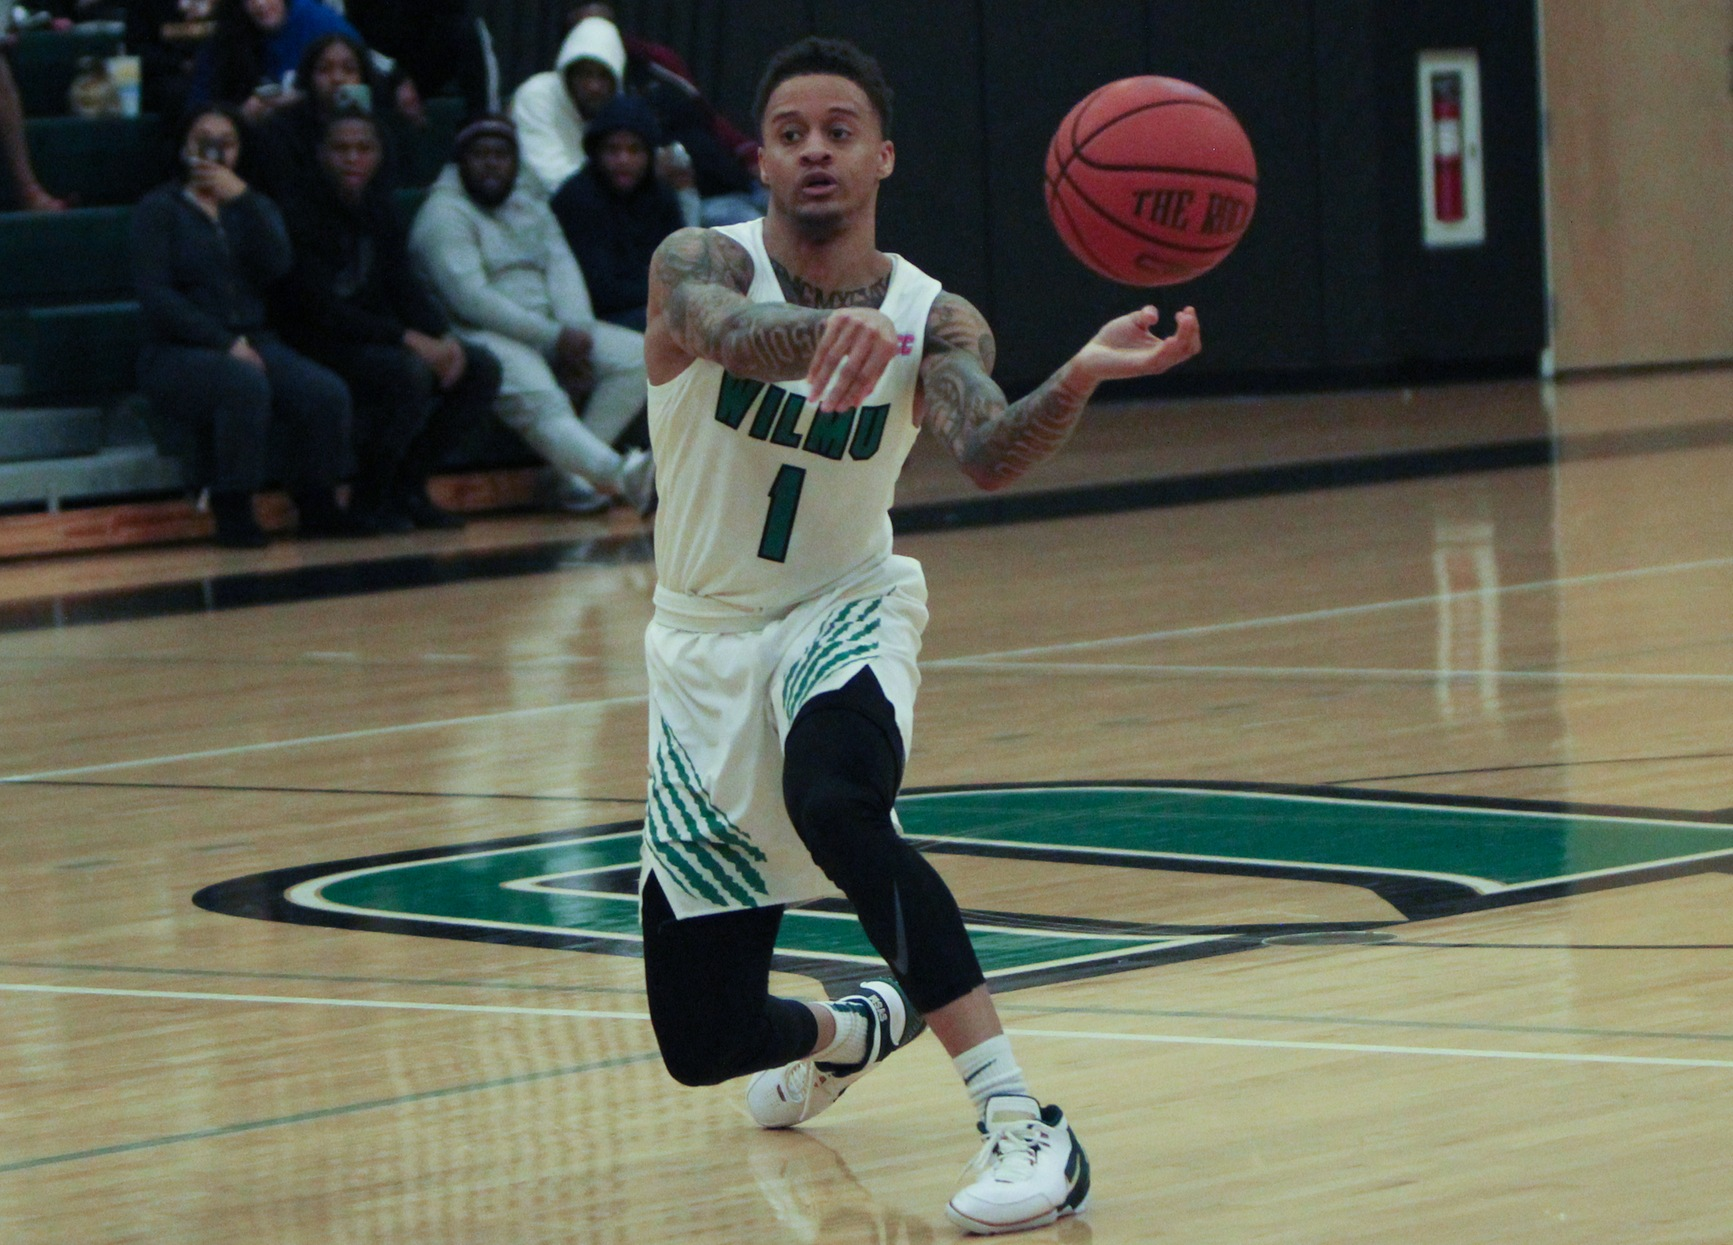 File photo of Jermaine Head who dished out 14 assists while scoring 17 points at Caldwell. Copyright 2020; Wilmington University. All rights reserved. Photo by Samantha Kelley. February 4, 2020 vs. Chestnut Hill.